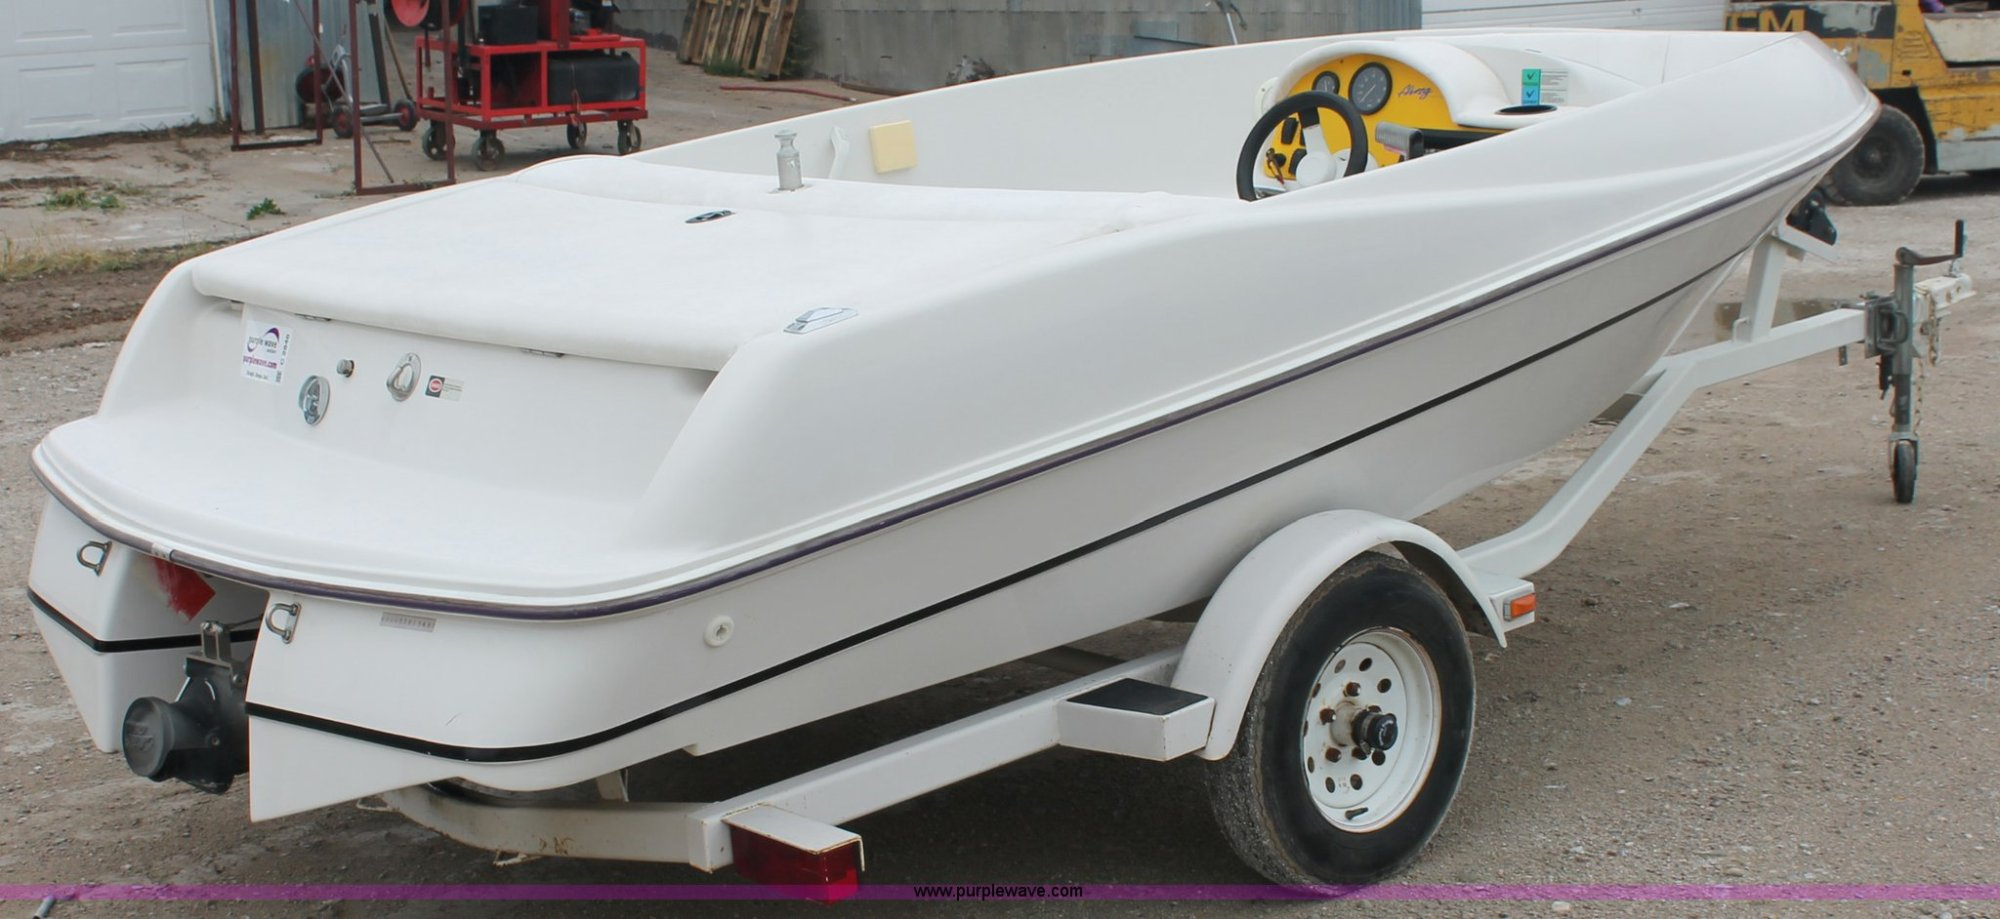 hight resolution of  four winns fling jet boat full size in new window